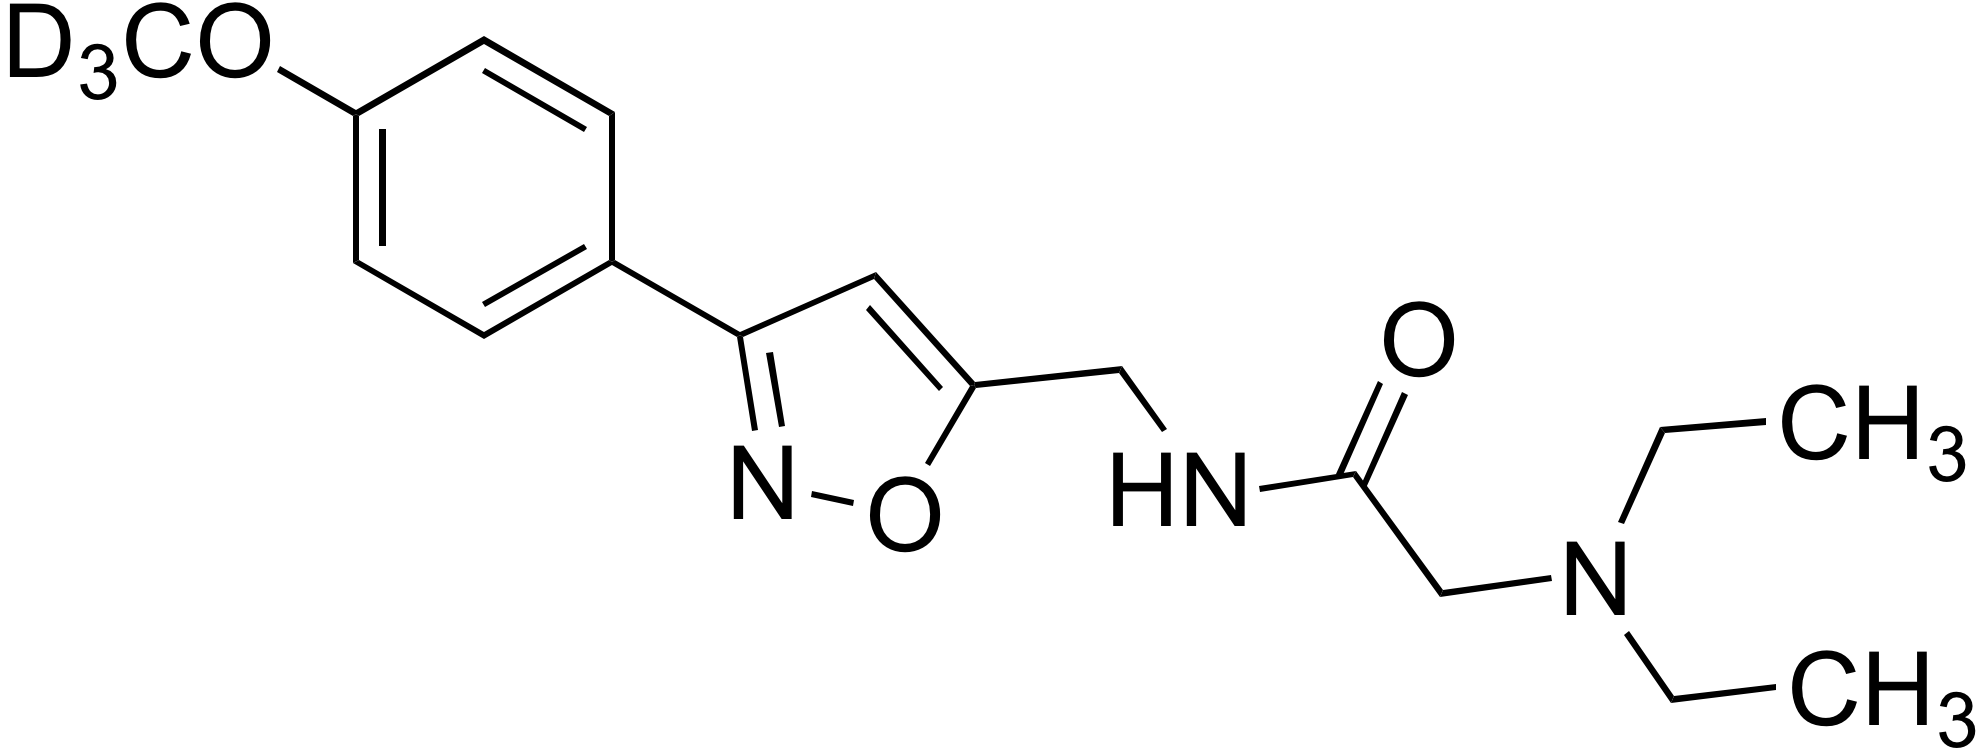 2-(Diethylamino)-N-((3-(4-methoxy-d<sub>3</sub>-phenyl)isoxazol-5-yl)methyl)acetamide